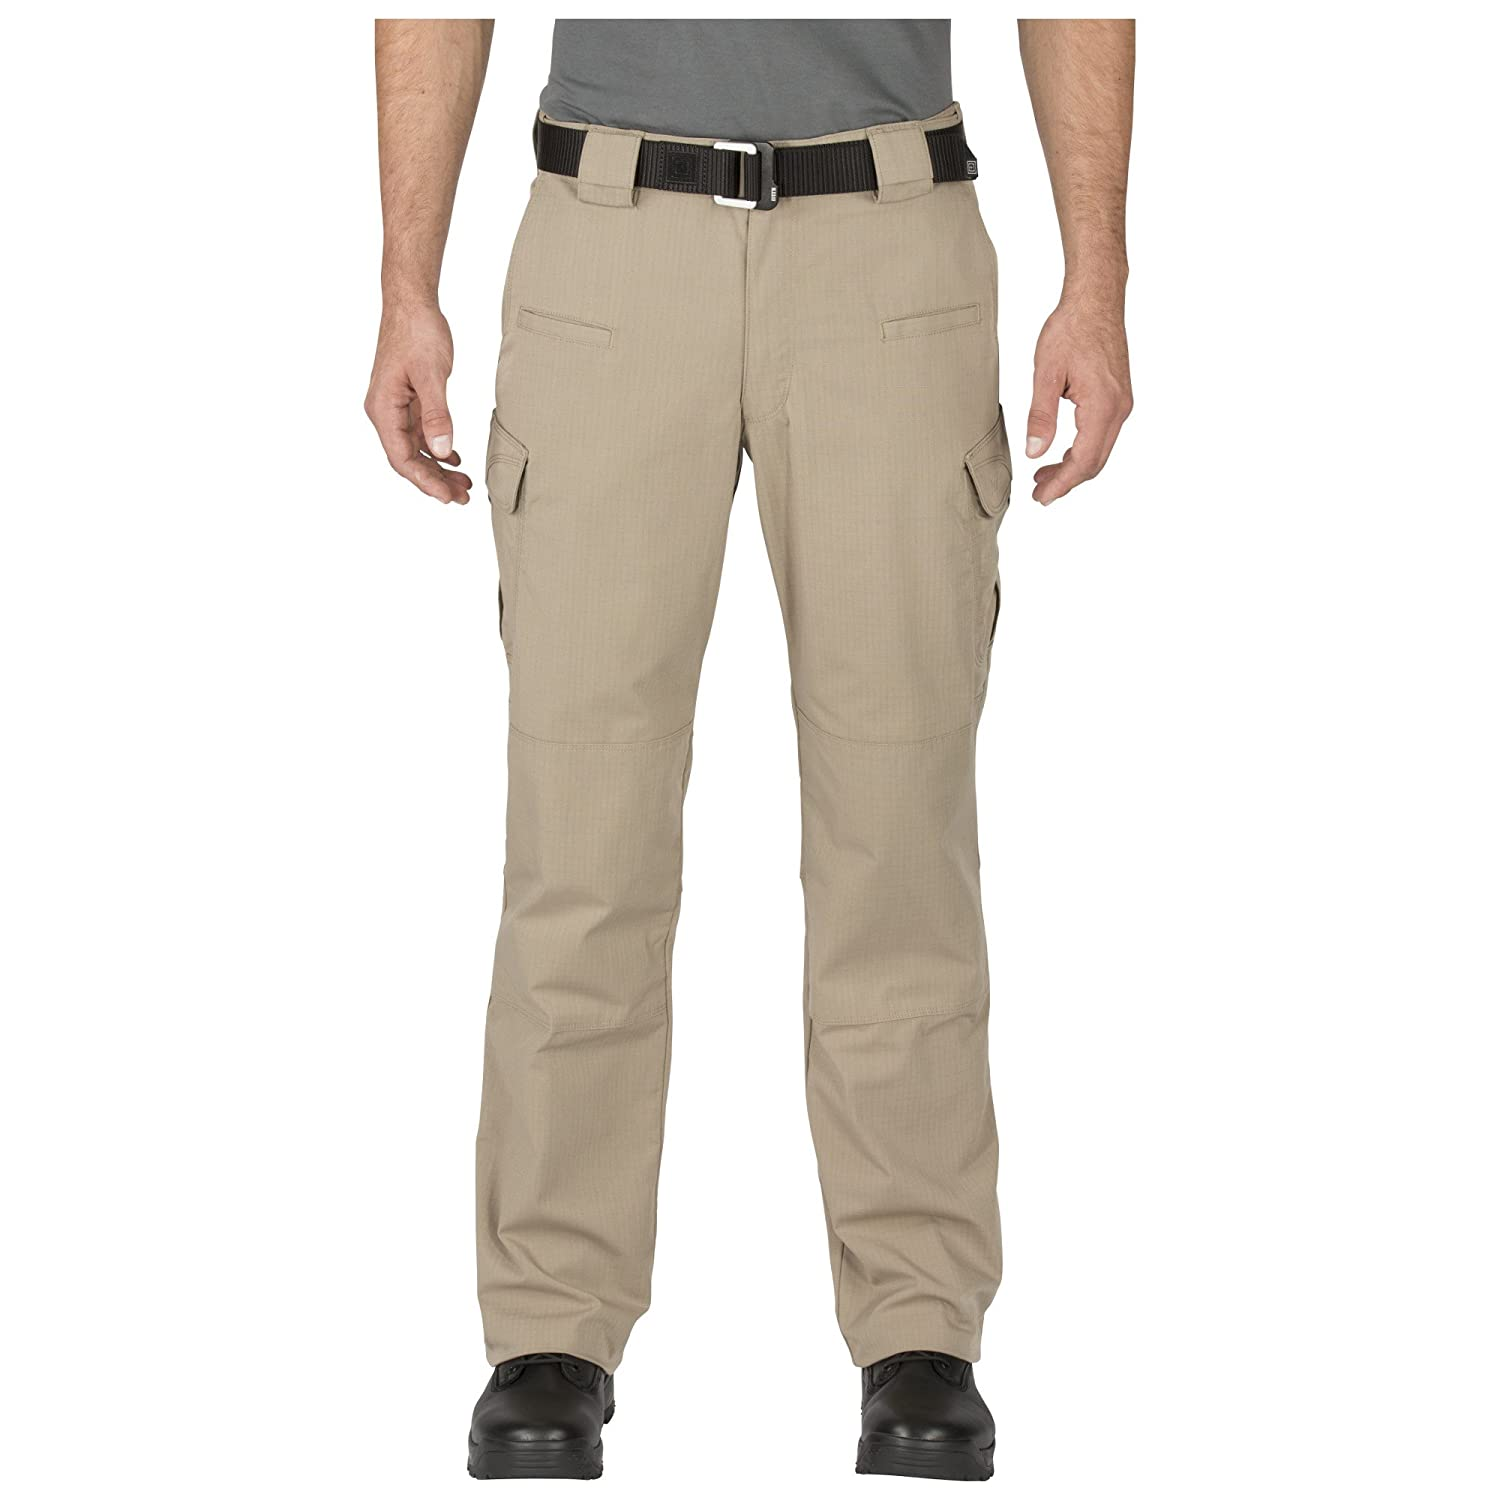 5.11 STRYKE Tactical Pant Style 74369